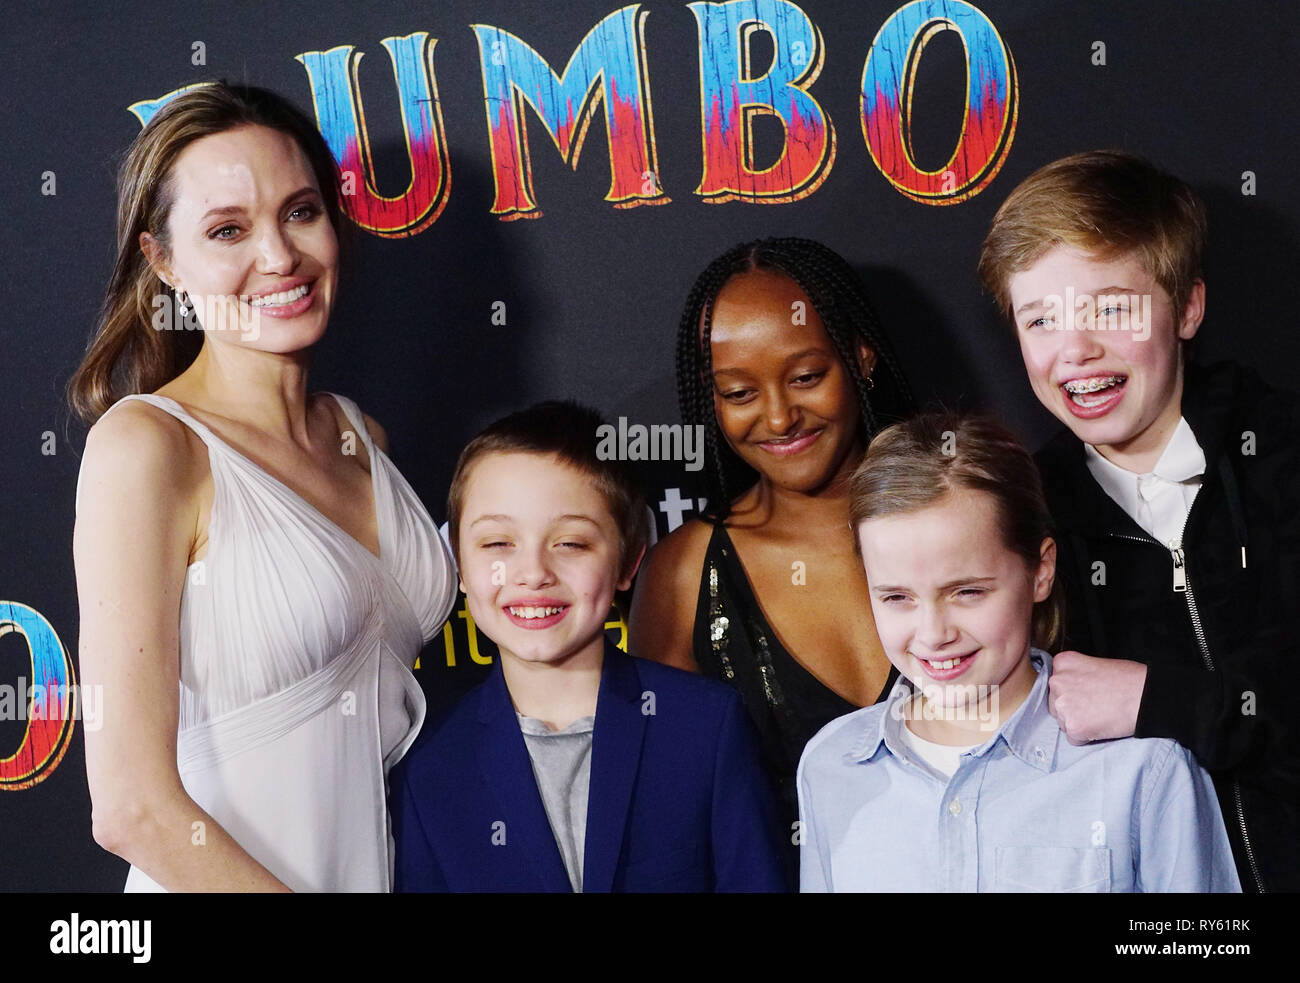 Hollywood, California, USA. 11th Mar, 2019. Angelina Jolie with her children Knox Jolie-Pitt and Zahara Marley Jolie-Pitt  029 attend the premiere of Disney s Dumbo at El Capitan Theatre on March 11, 2019 in Los Angeles, California. Credit: Tsuni / USA/Alamy Live News - Stock Image